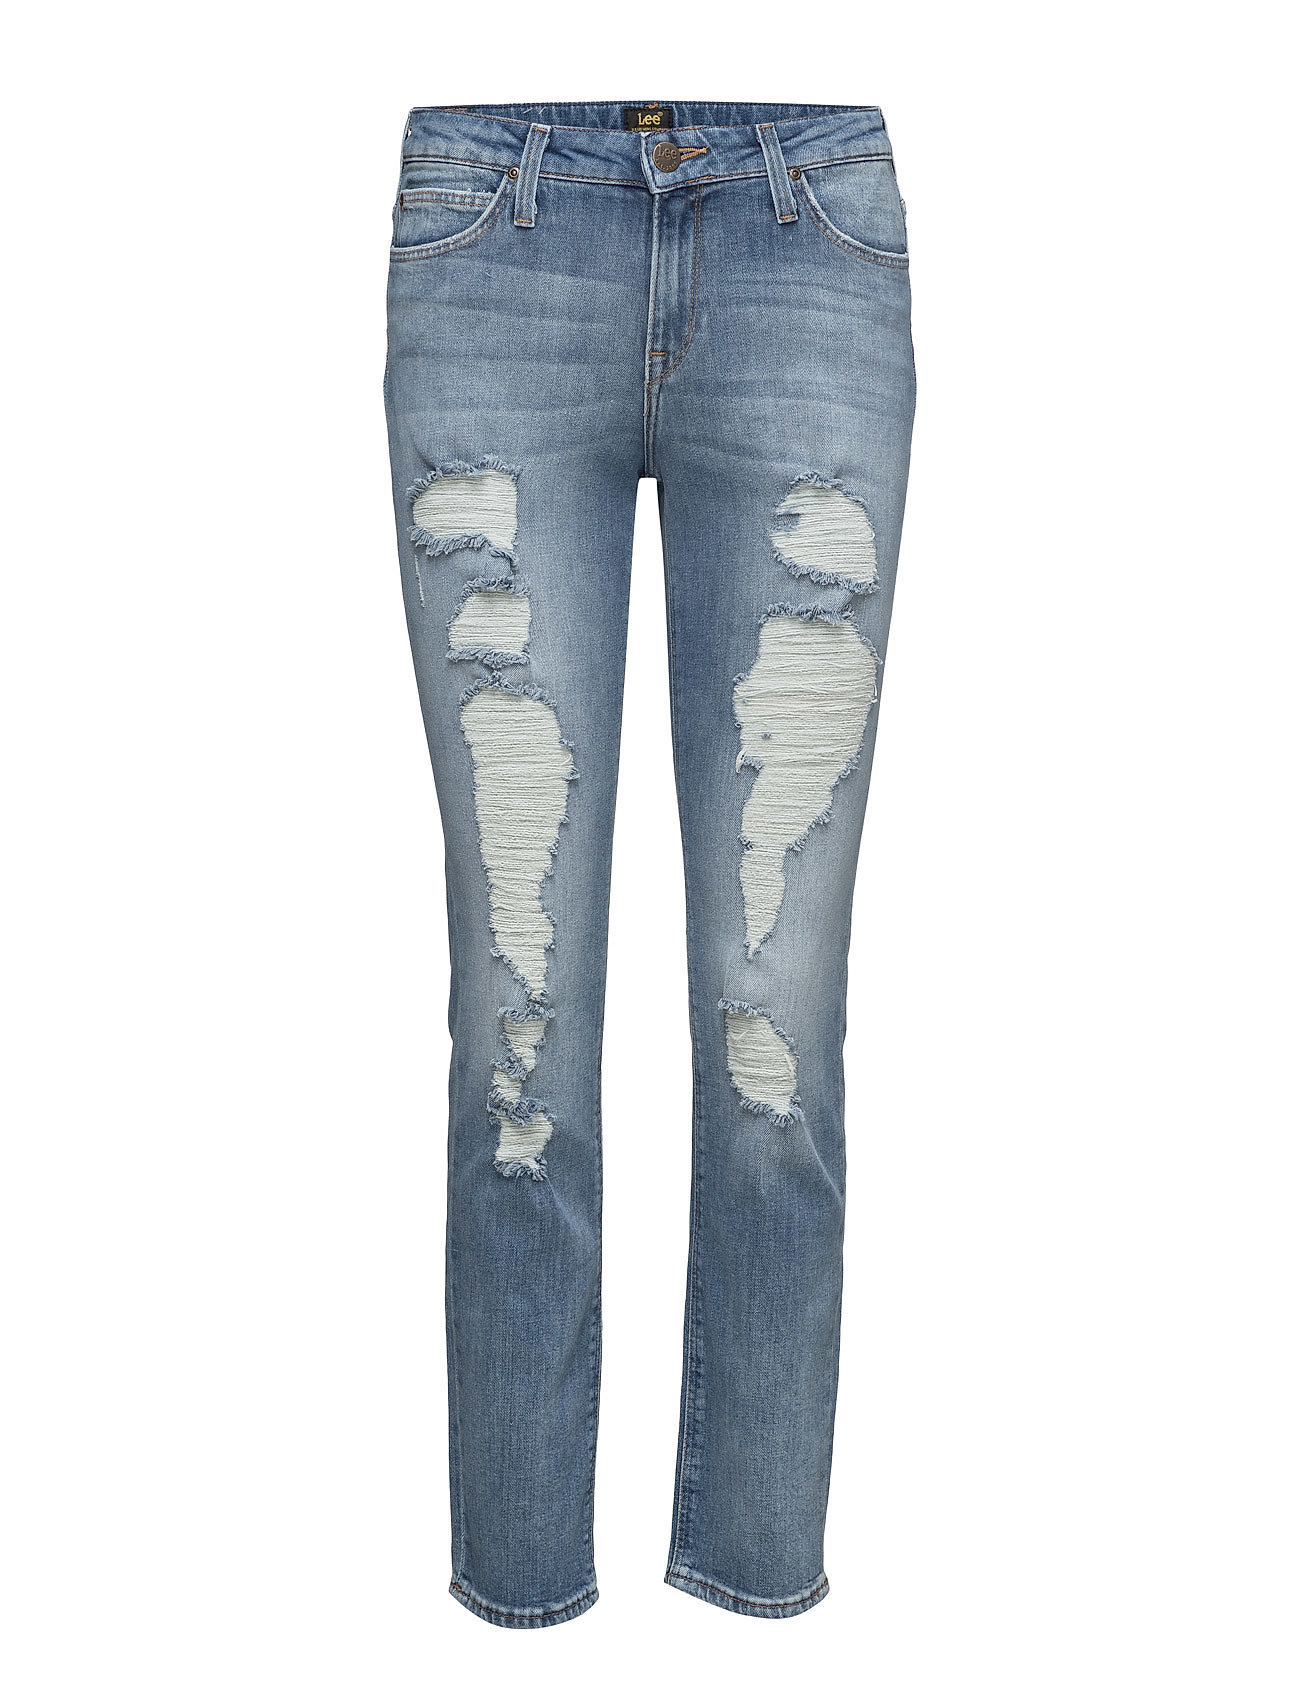 Elly Urban Trash Lee Jeans Skinny til Damer i